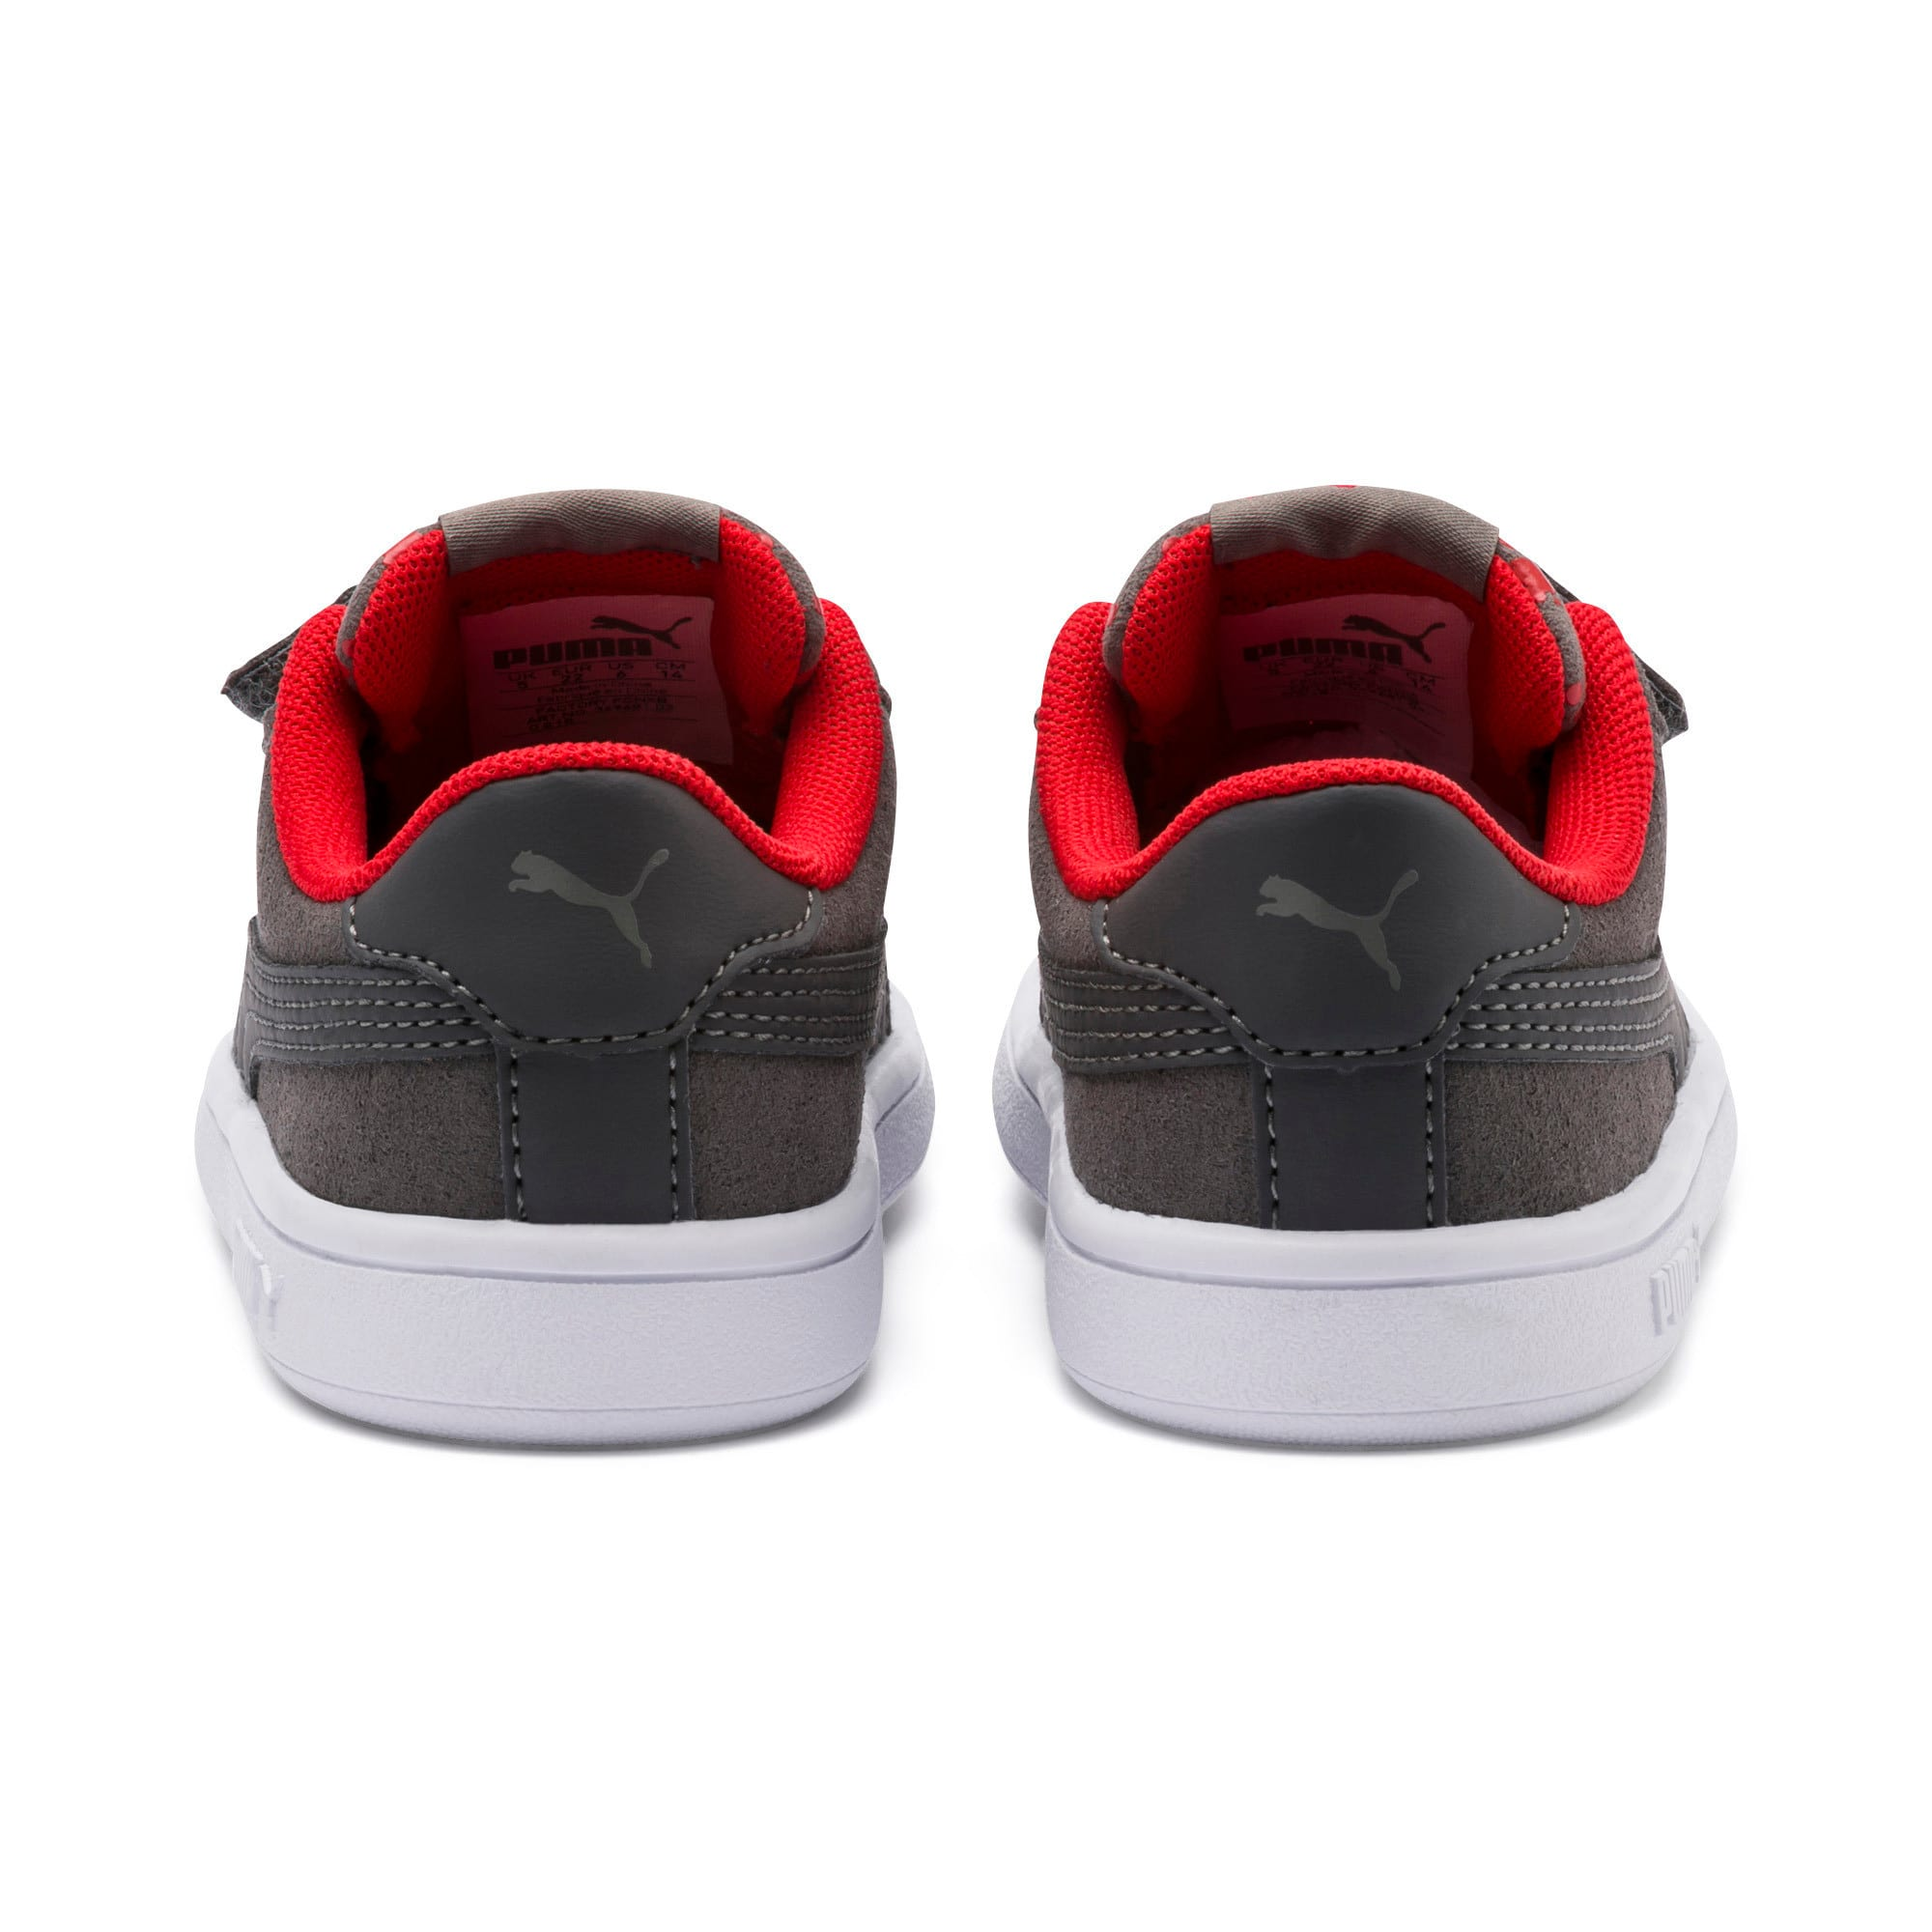 Thumbnail 3 of PUMA Smash v2 Monster Babies' Trainers, Asphalt-C. Gray-Red-White, medium